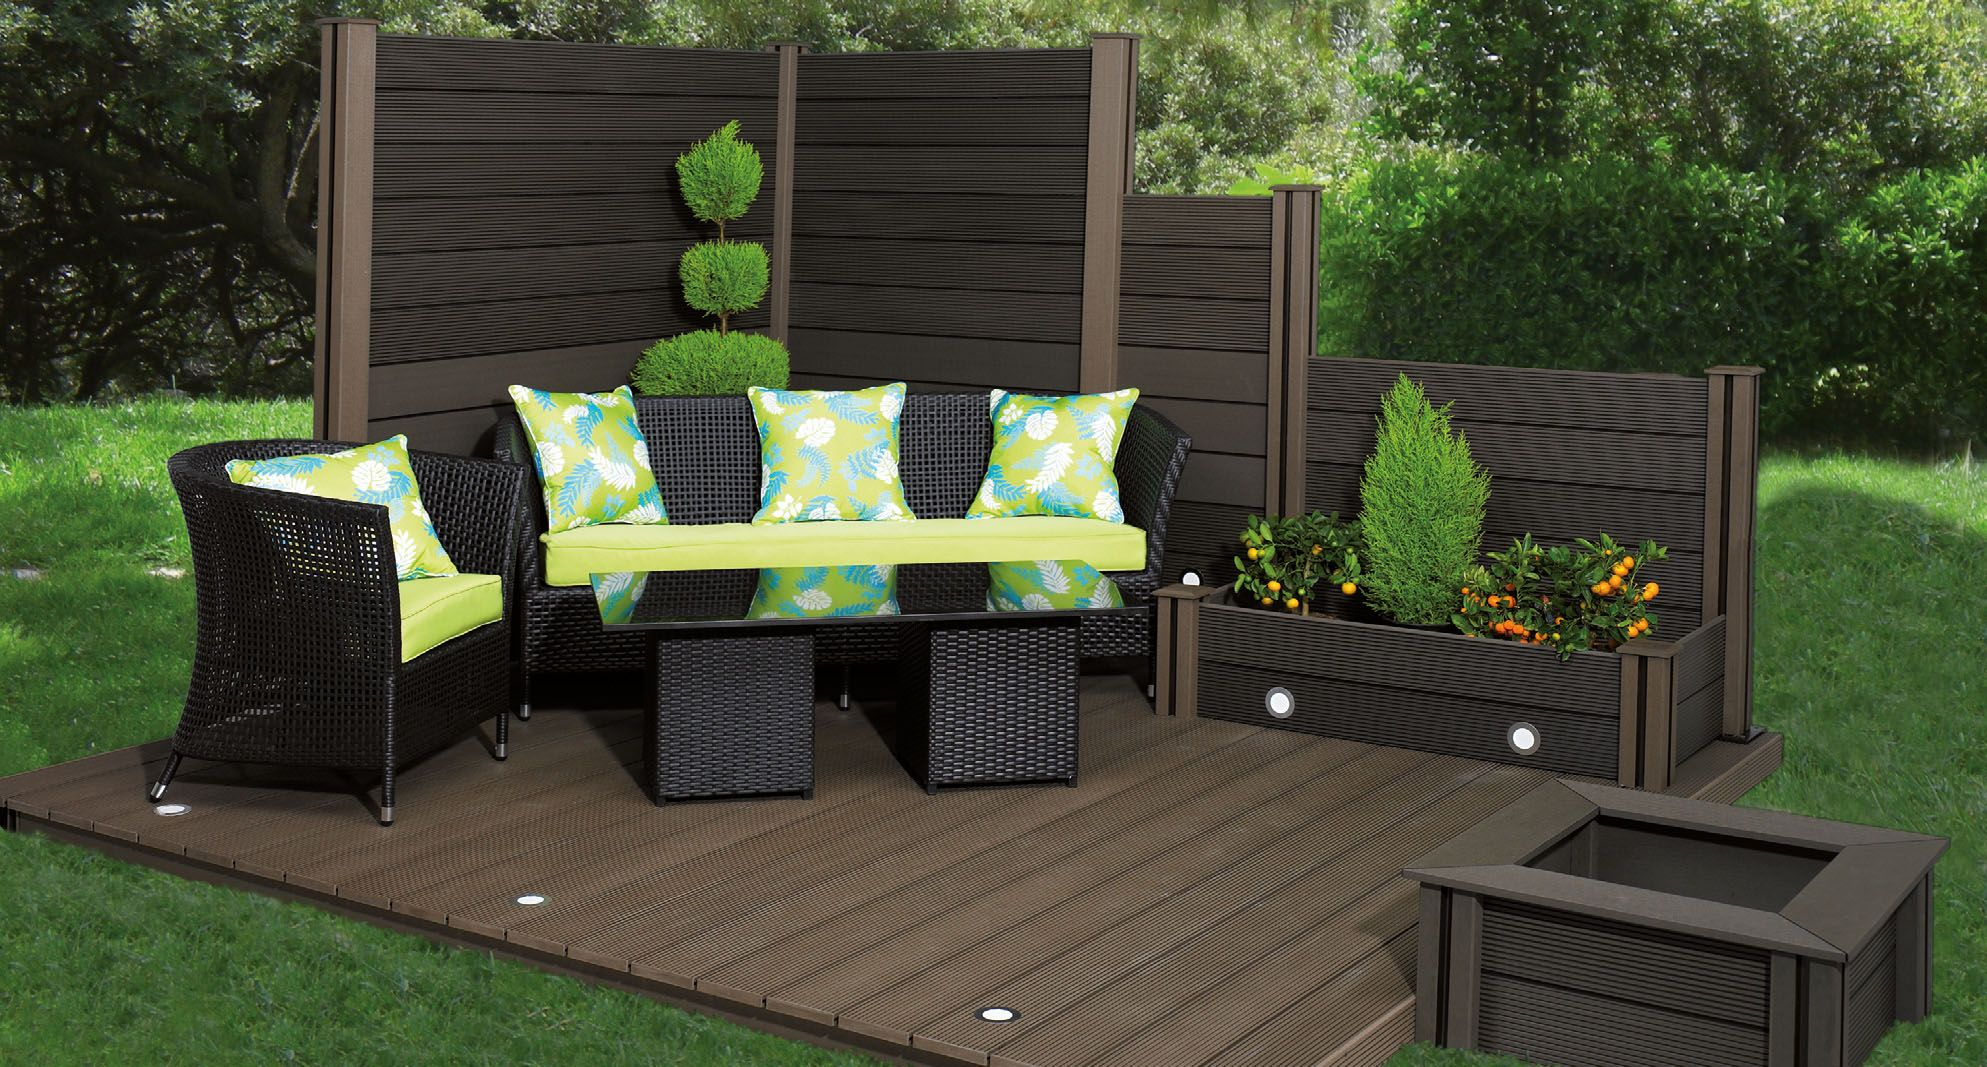 pin von haus garten gmbh auf produkte outdoor furniture sets outdoor decor und. Black Bedroom Furniture Sets. Home Design Ideas